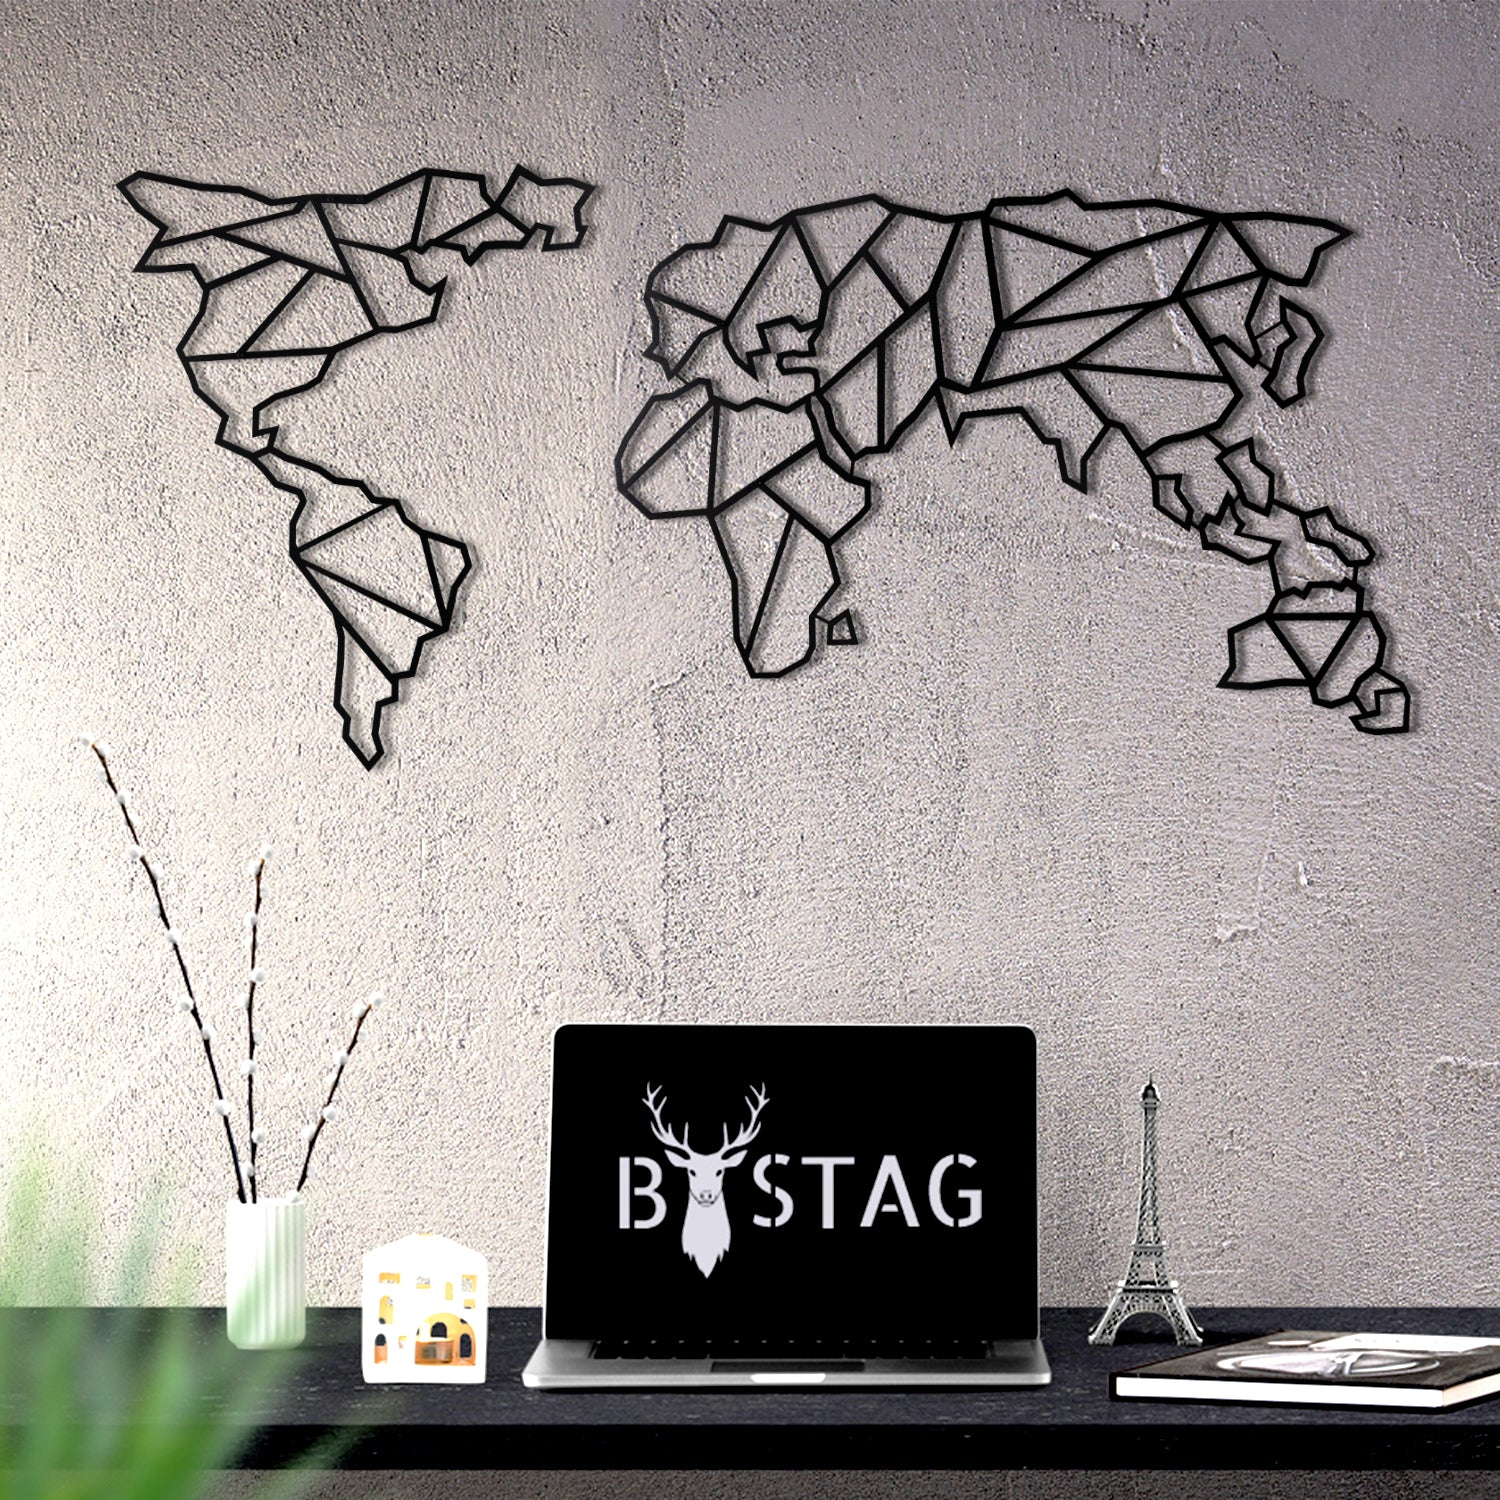 Bystag metal dekoratif duvar aksesuarı dünya haritası- Bystag metal wall art-wall art-wall decor-metal wall decor-world map-metal world map